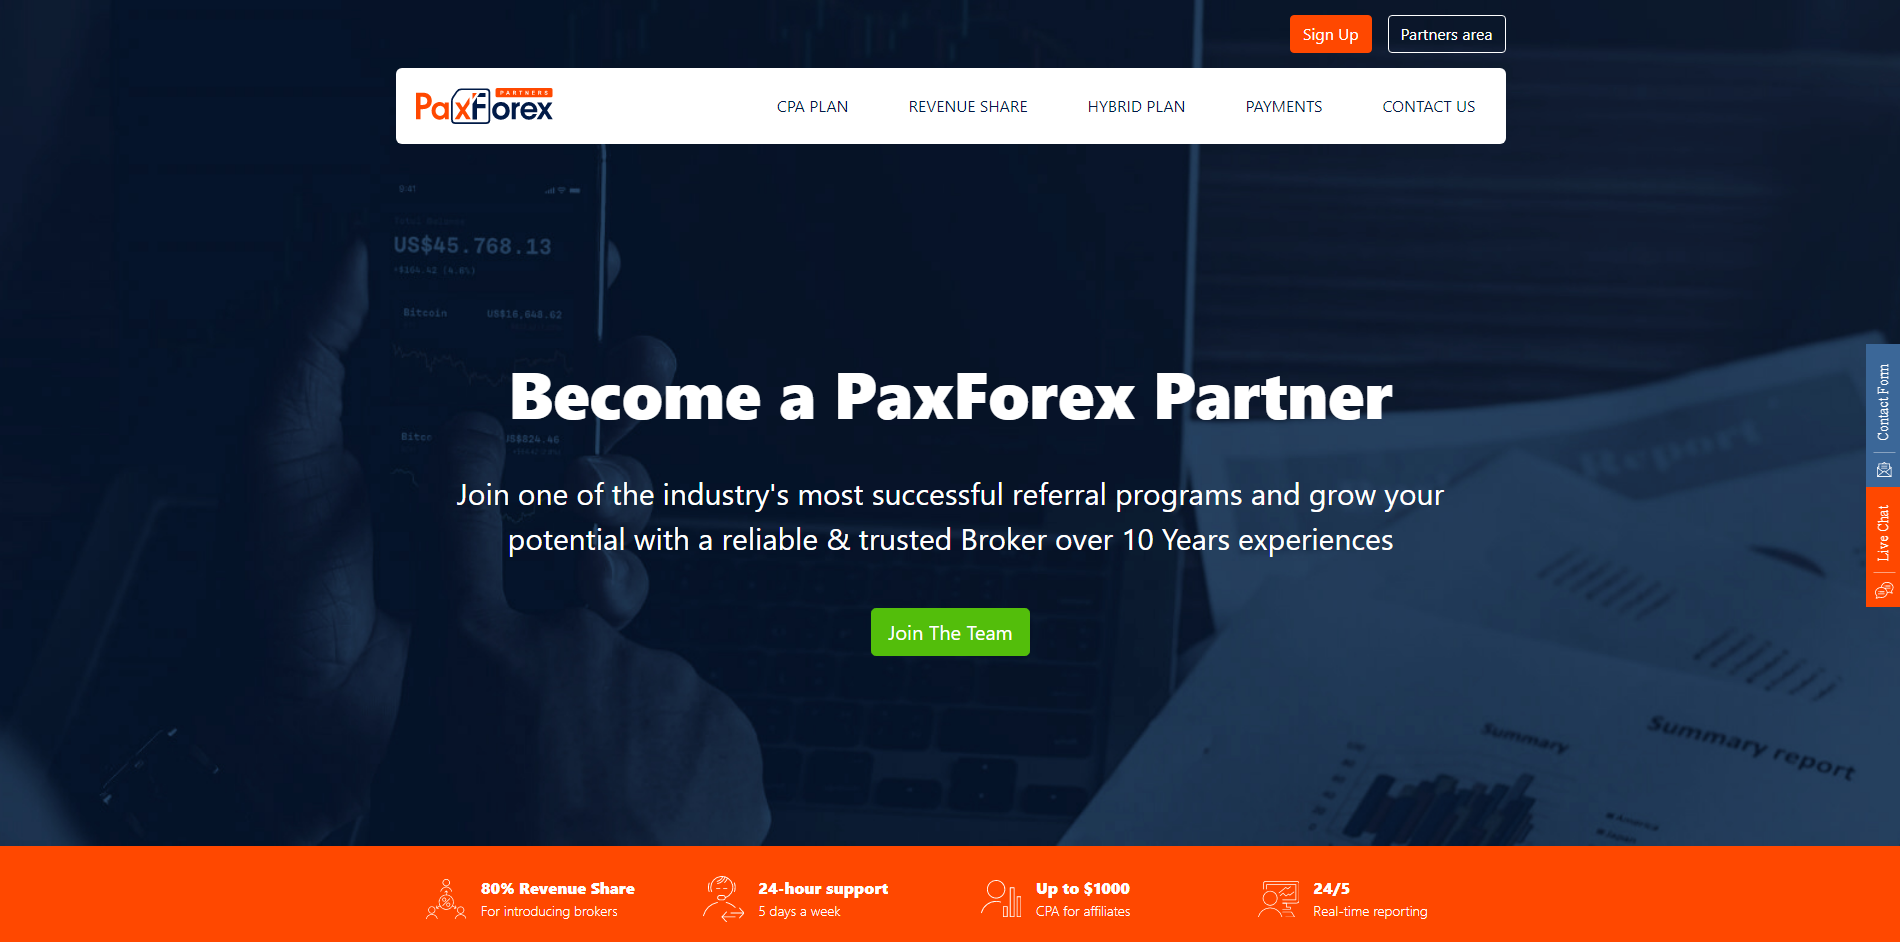 PaxForex Partnership Program